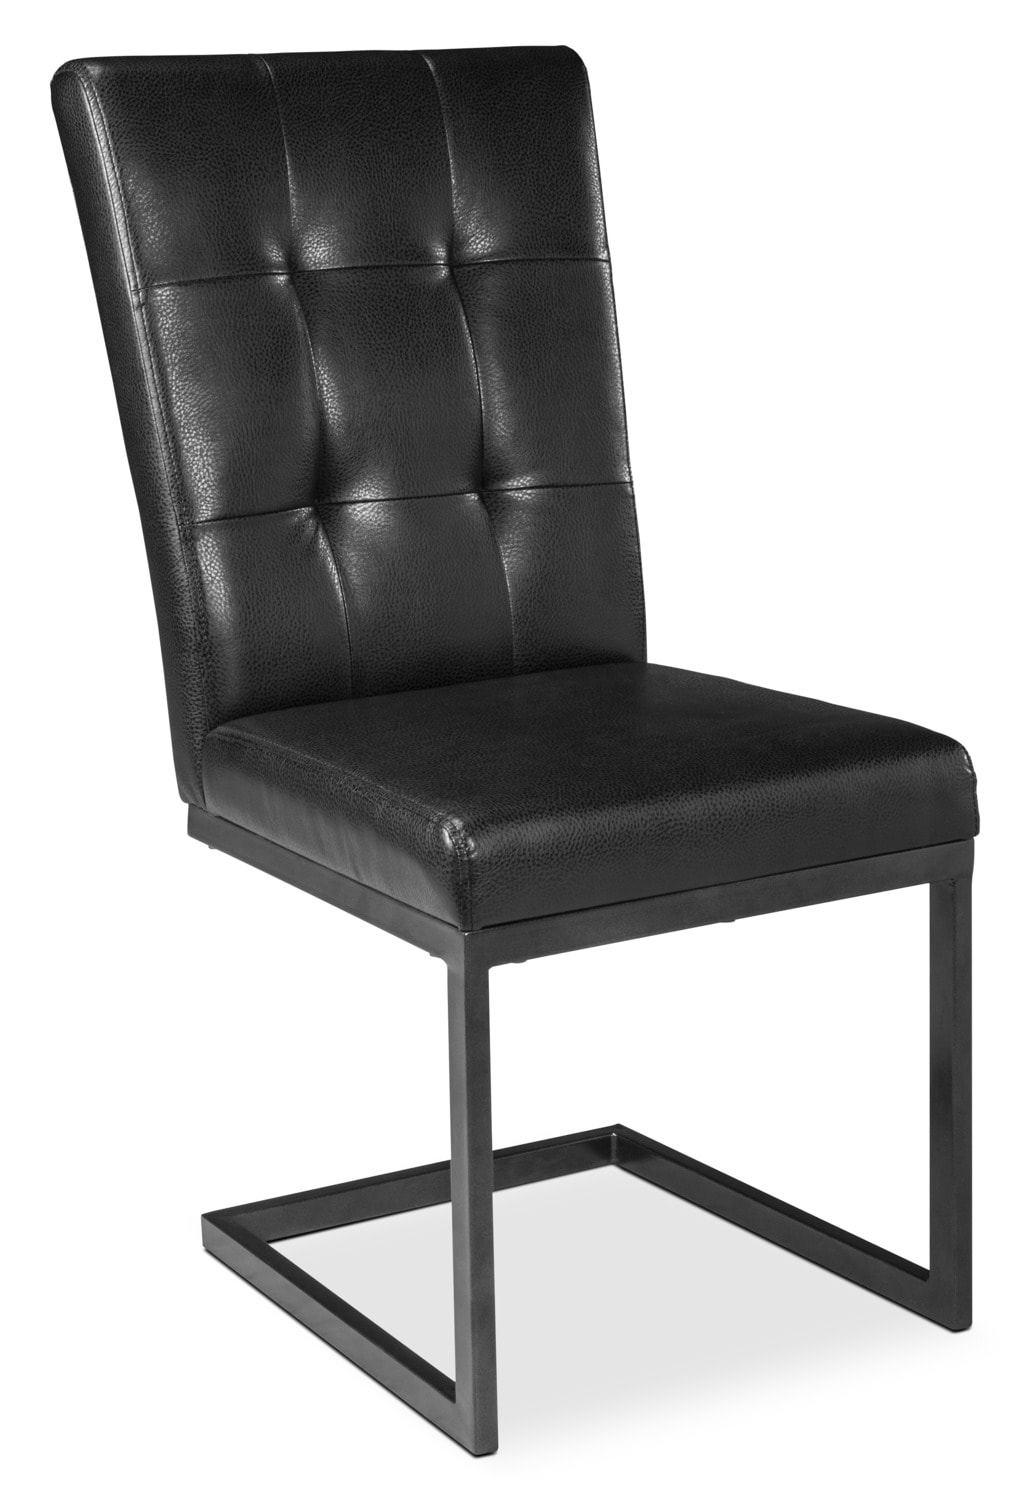 Dining Room Furniture - Esmarina Dining Chair